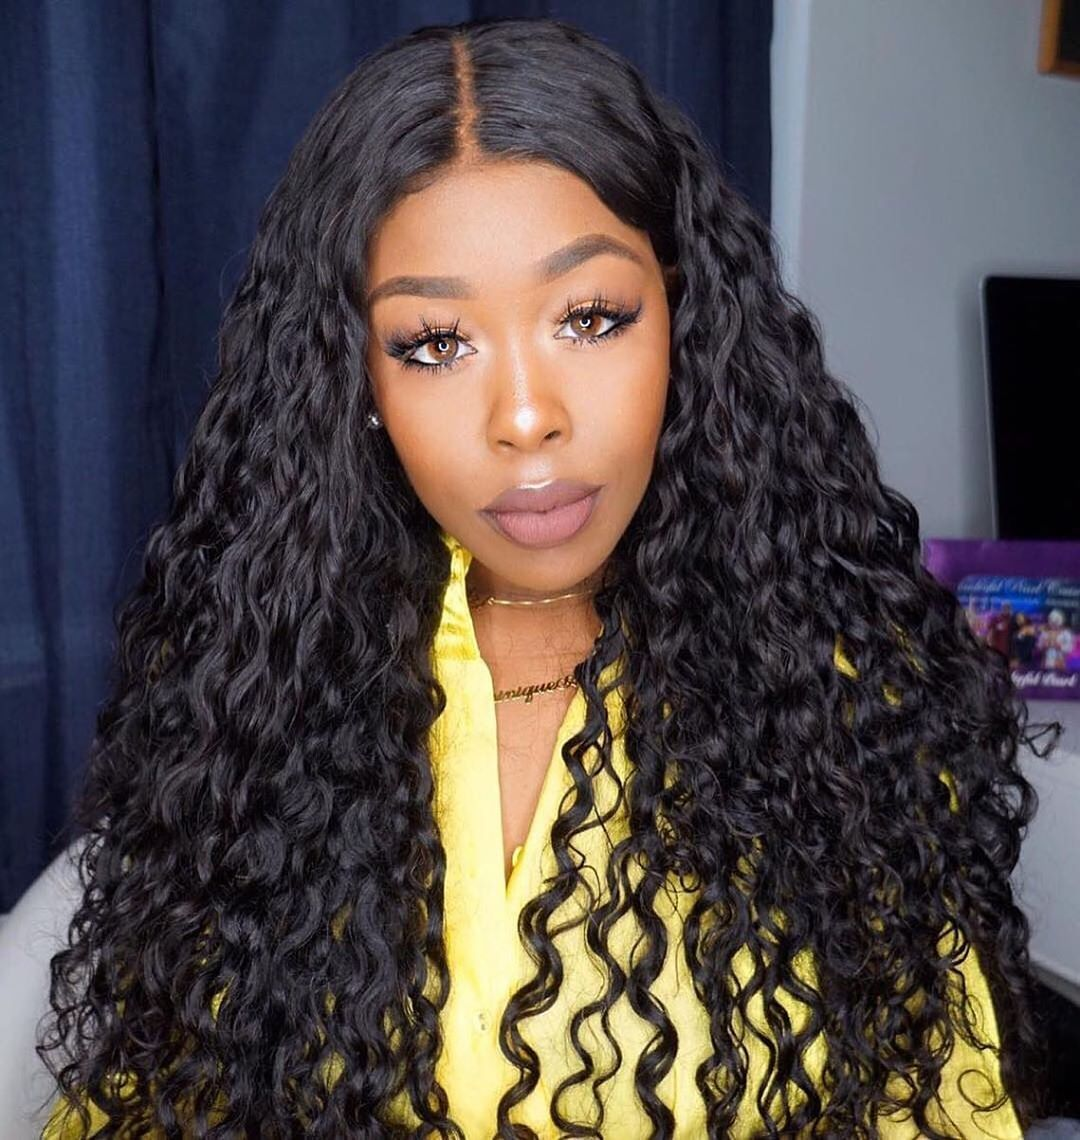 Curly Wigs Lace Front Curly Hair Black Hair Wigs For Cancer Patients 12 Inch Curly Lace Wig 2C Hair Men 27 Piece Hair Weave Milky Way